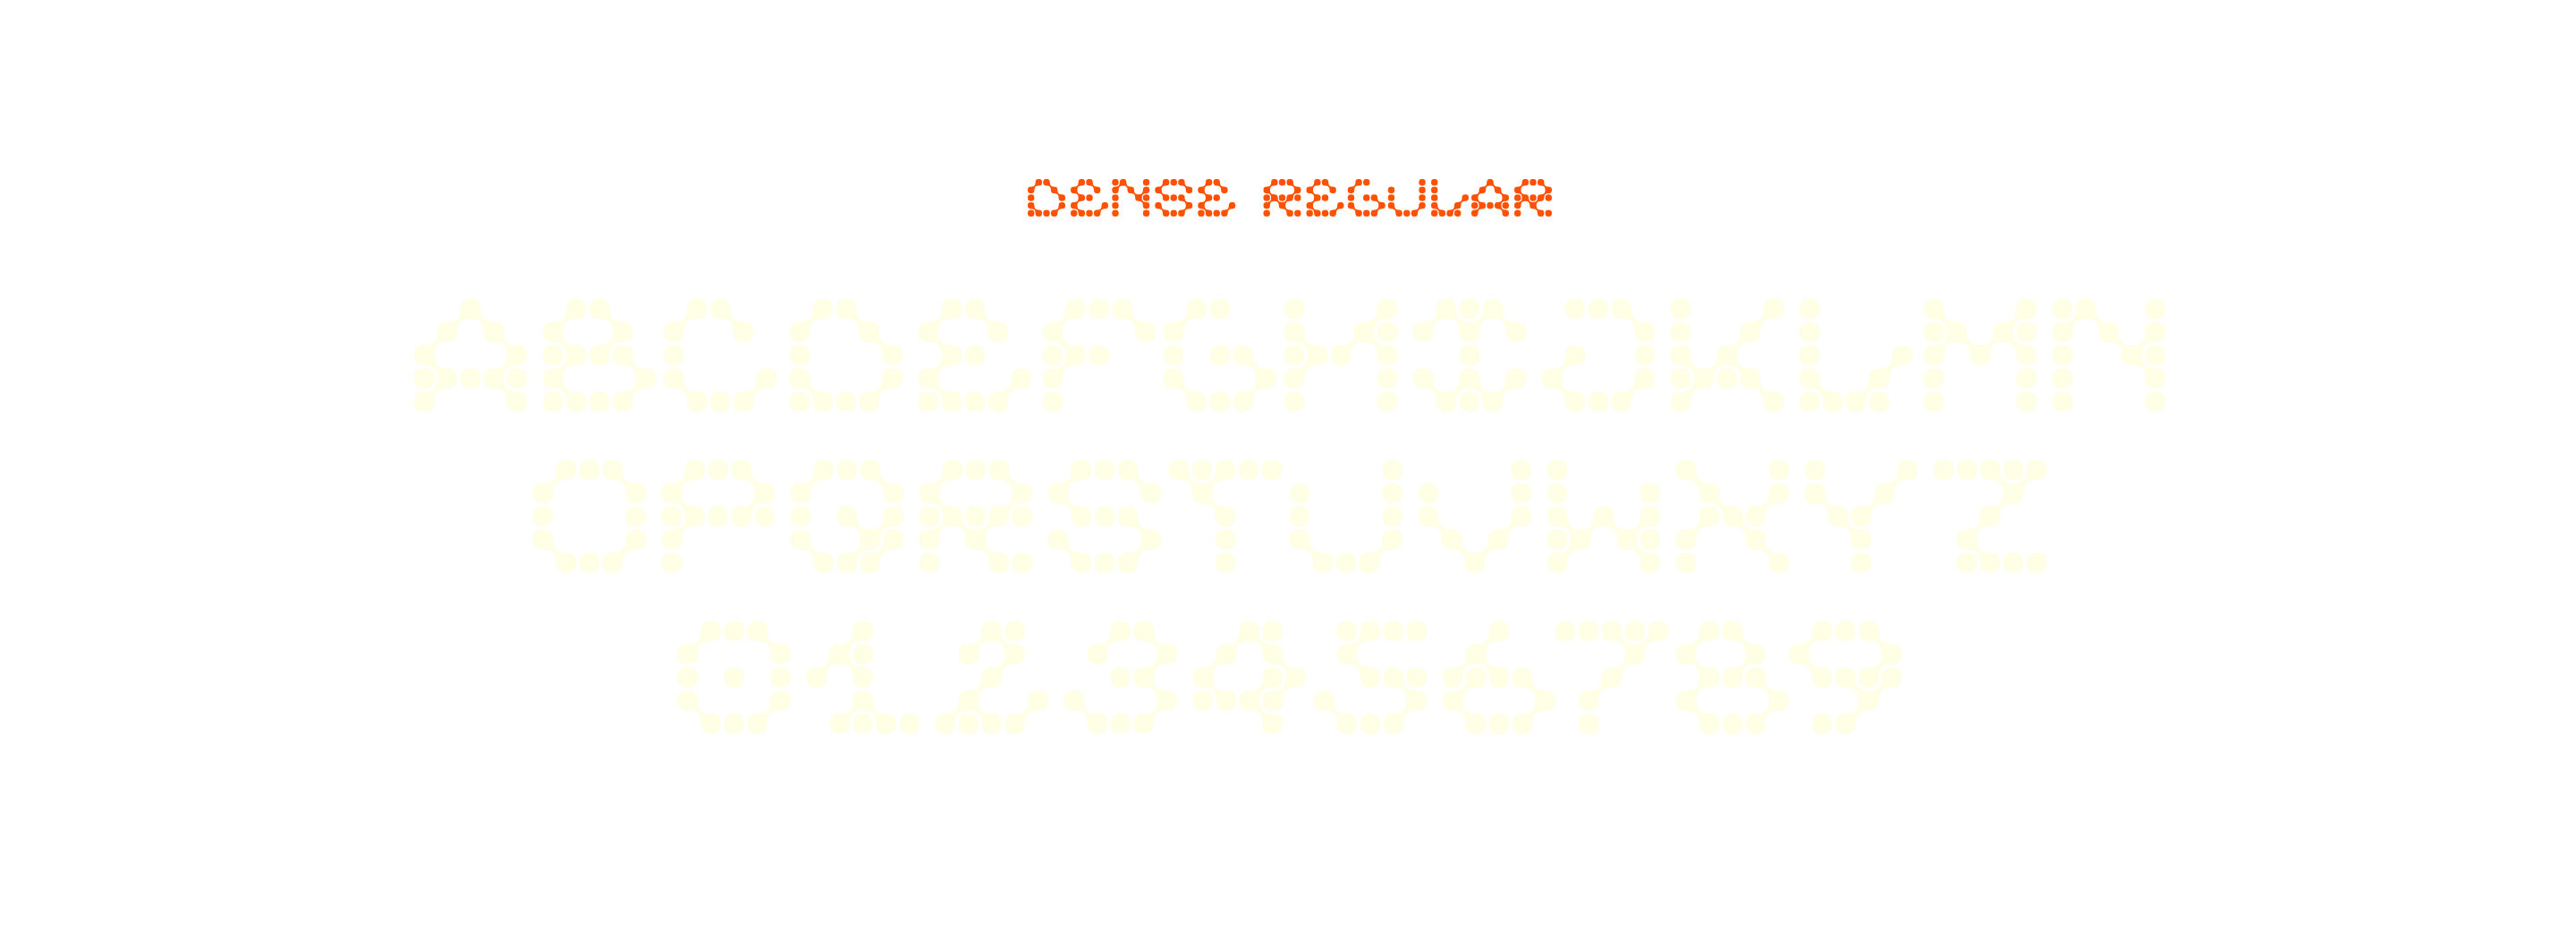 ARK-ES Typeface by Stuedio – Dense Regular